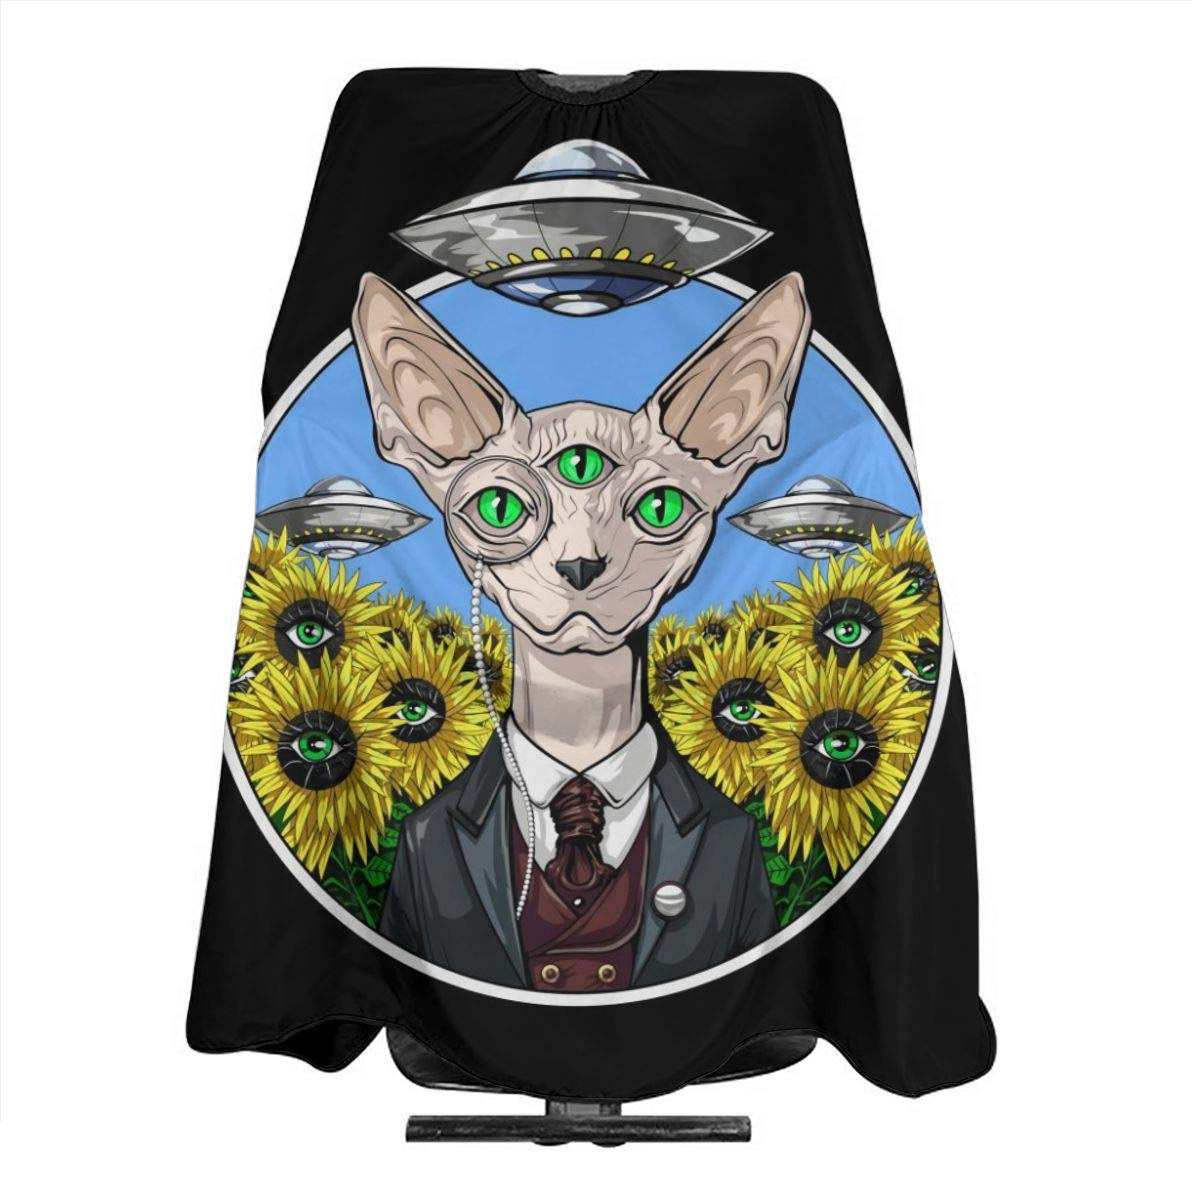 Professional Barber Cape Salon Hair Styling Cutting Haircut Aprons Alien Abduction Sphynx Cat Capes For Proof Hairdresser Coloring Perming Shampoo Chemical 55